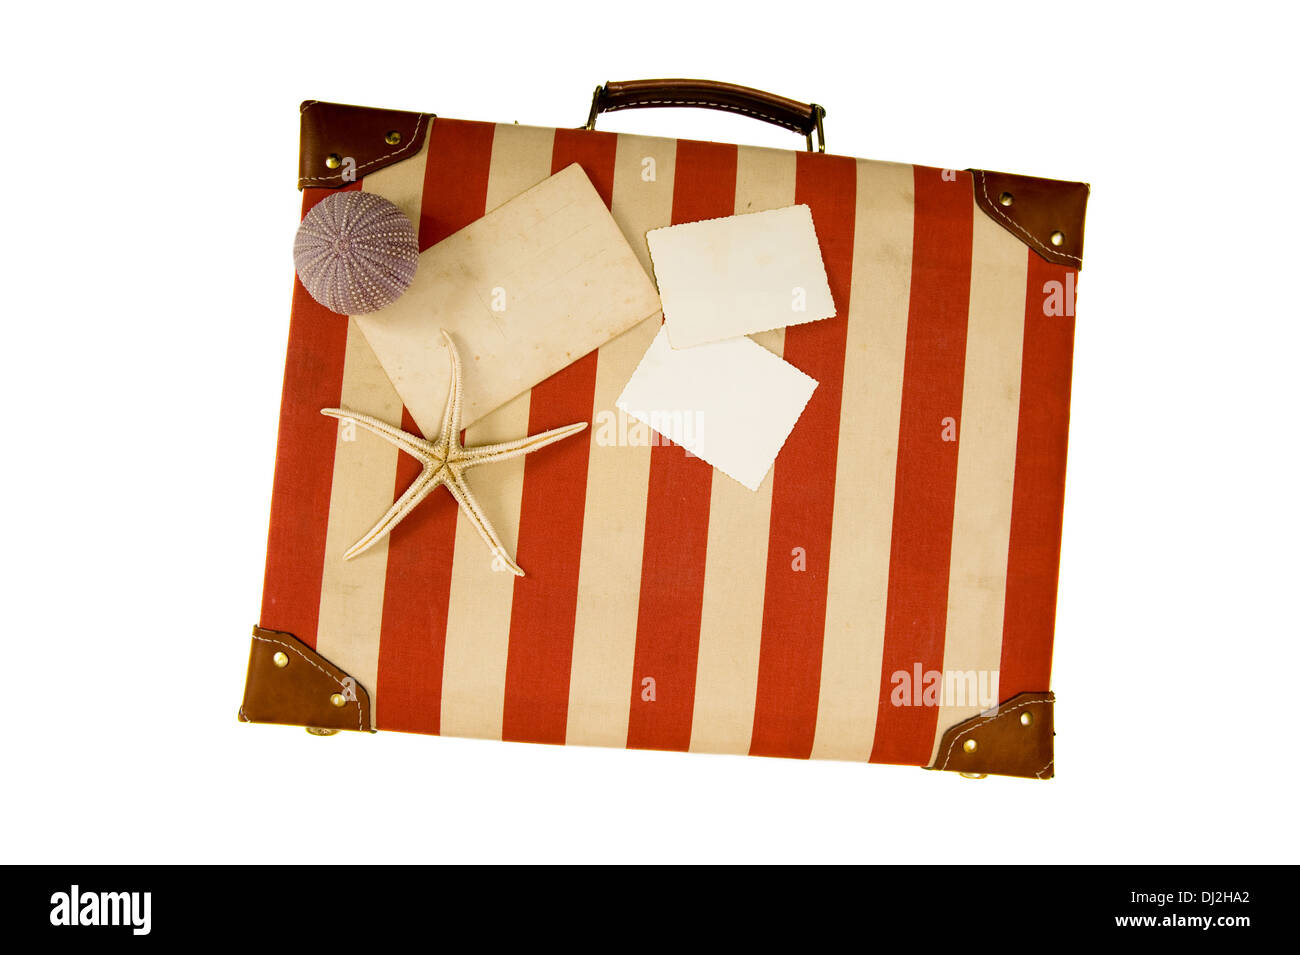 Old suitcase with blank photos and seashells isolated on white - Stock Image